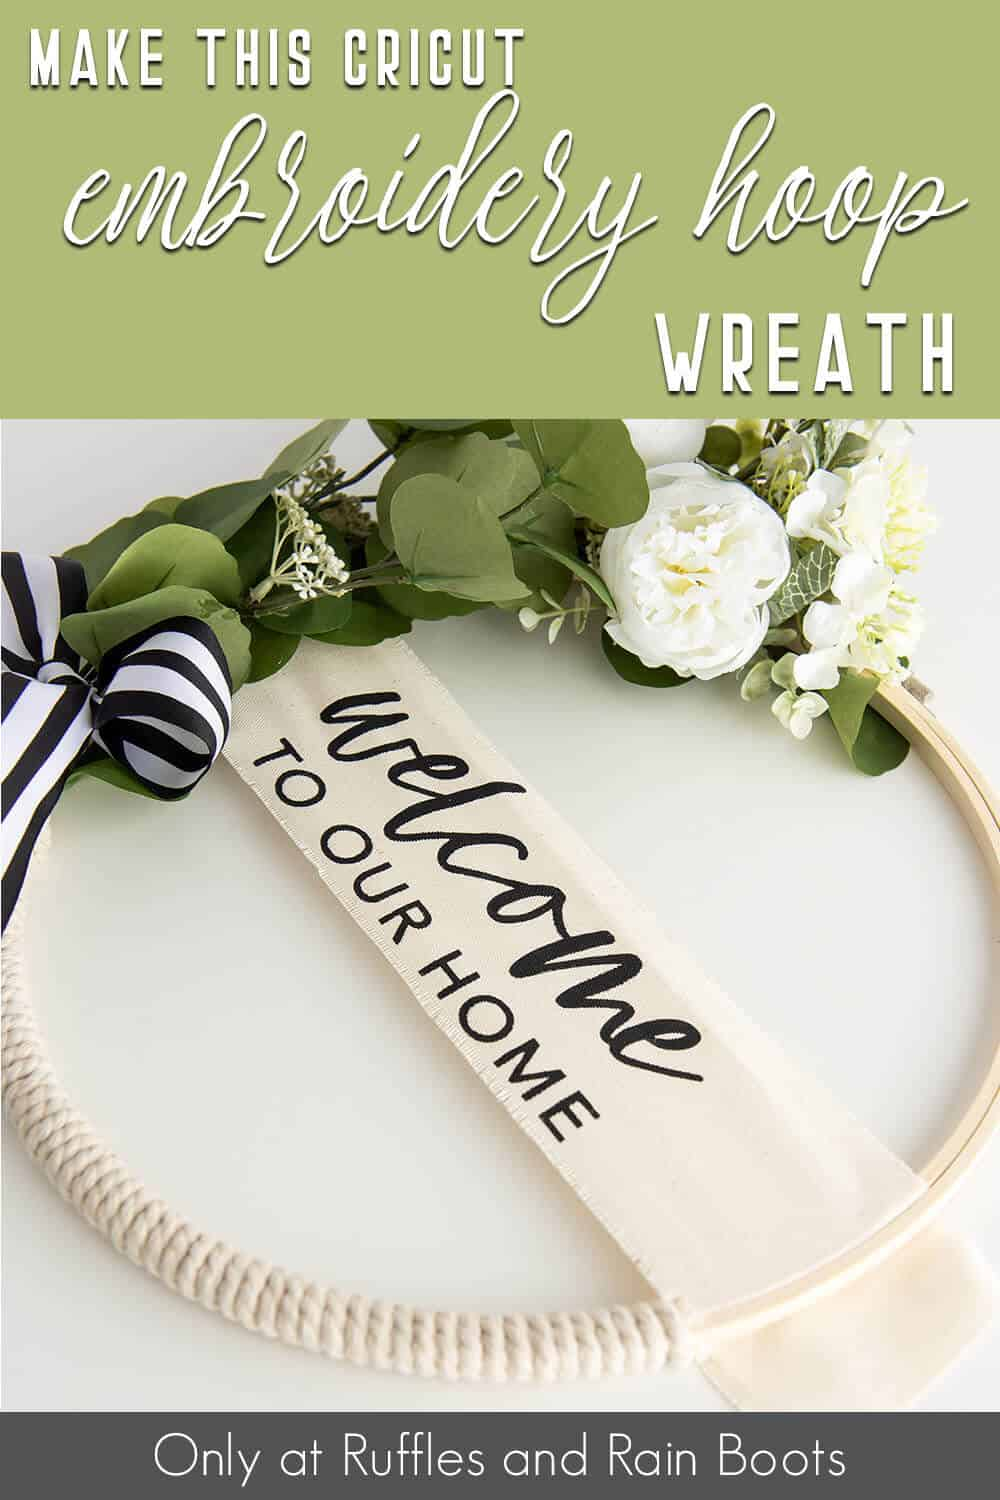 wreath made of an embroidery hoop cricut craft with text which reads make this cricut embroidery hoop wreath